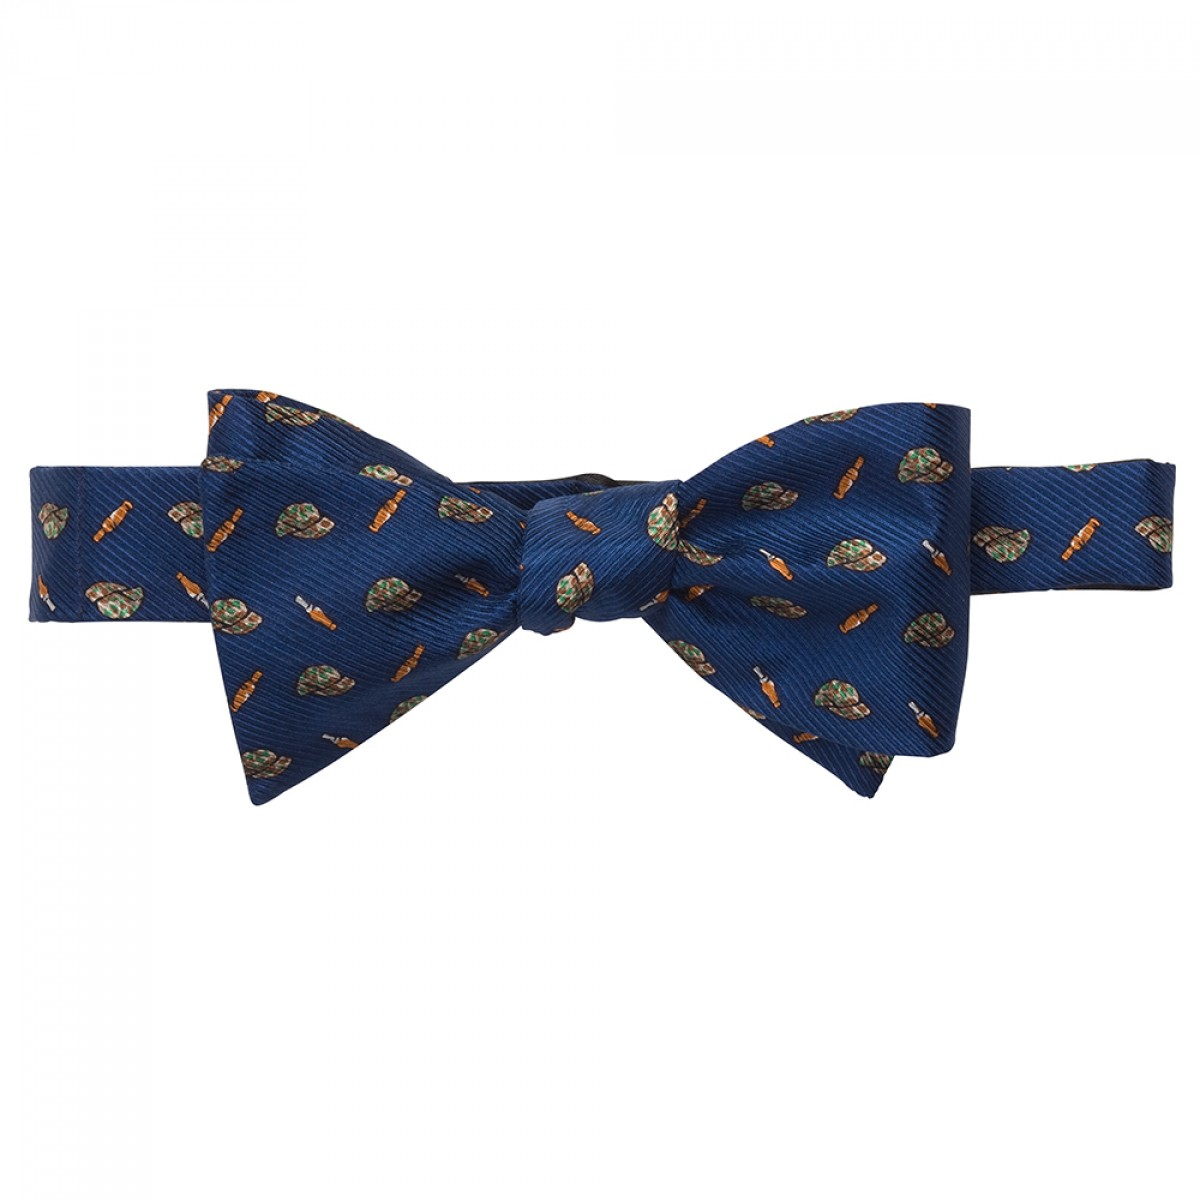 WM. Lamb & Son - Calling All Ducks Bow - Navy